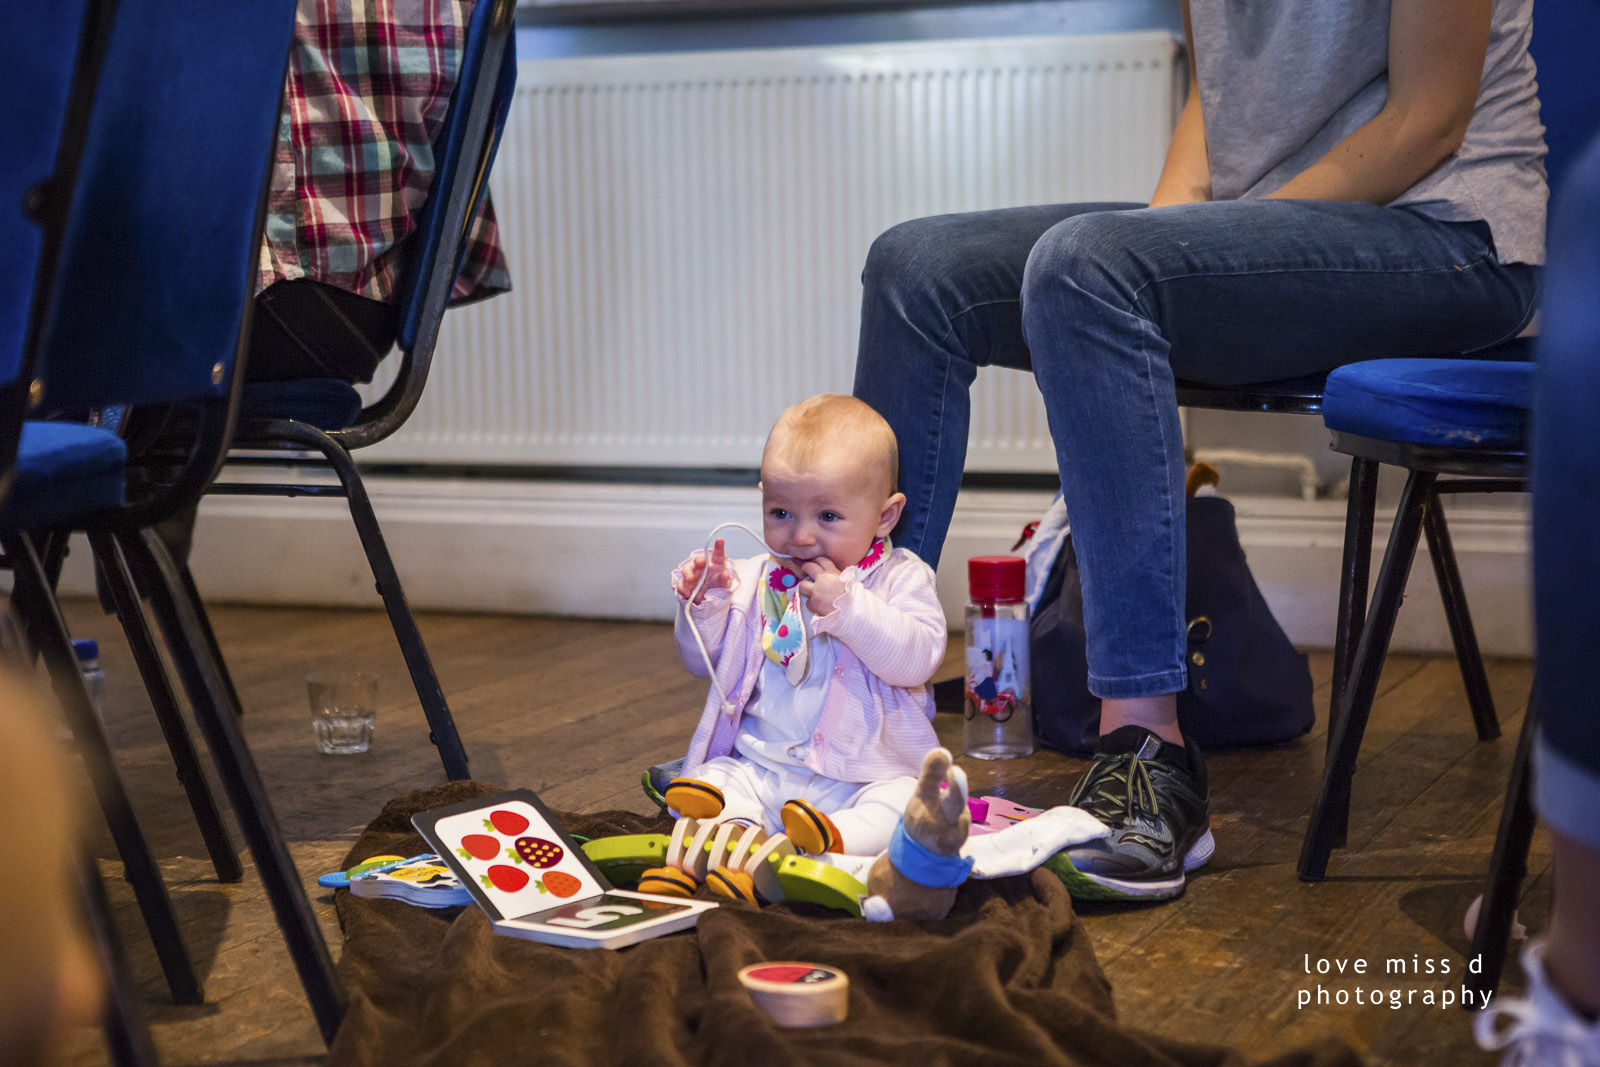 September 2018: the secret to being a super mummy - We heard from the amazing Jessica of Super Mum Society giving an insight into her journey as a mum so far and what she's learnt along the way in terms of how to be the mum YOU want to be! Jessica has set up Super Mum Society to empower mums to bring a bit more balance and calm into their lives. 'Winging it' can be stressful at times, and we heard useful tips to work through the many challenges we face as new mums.